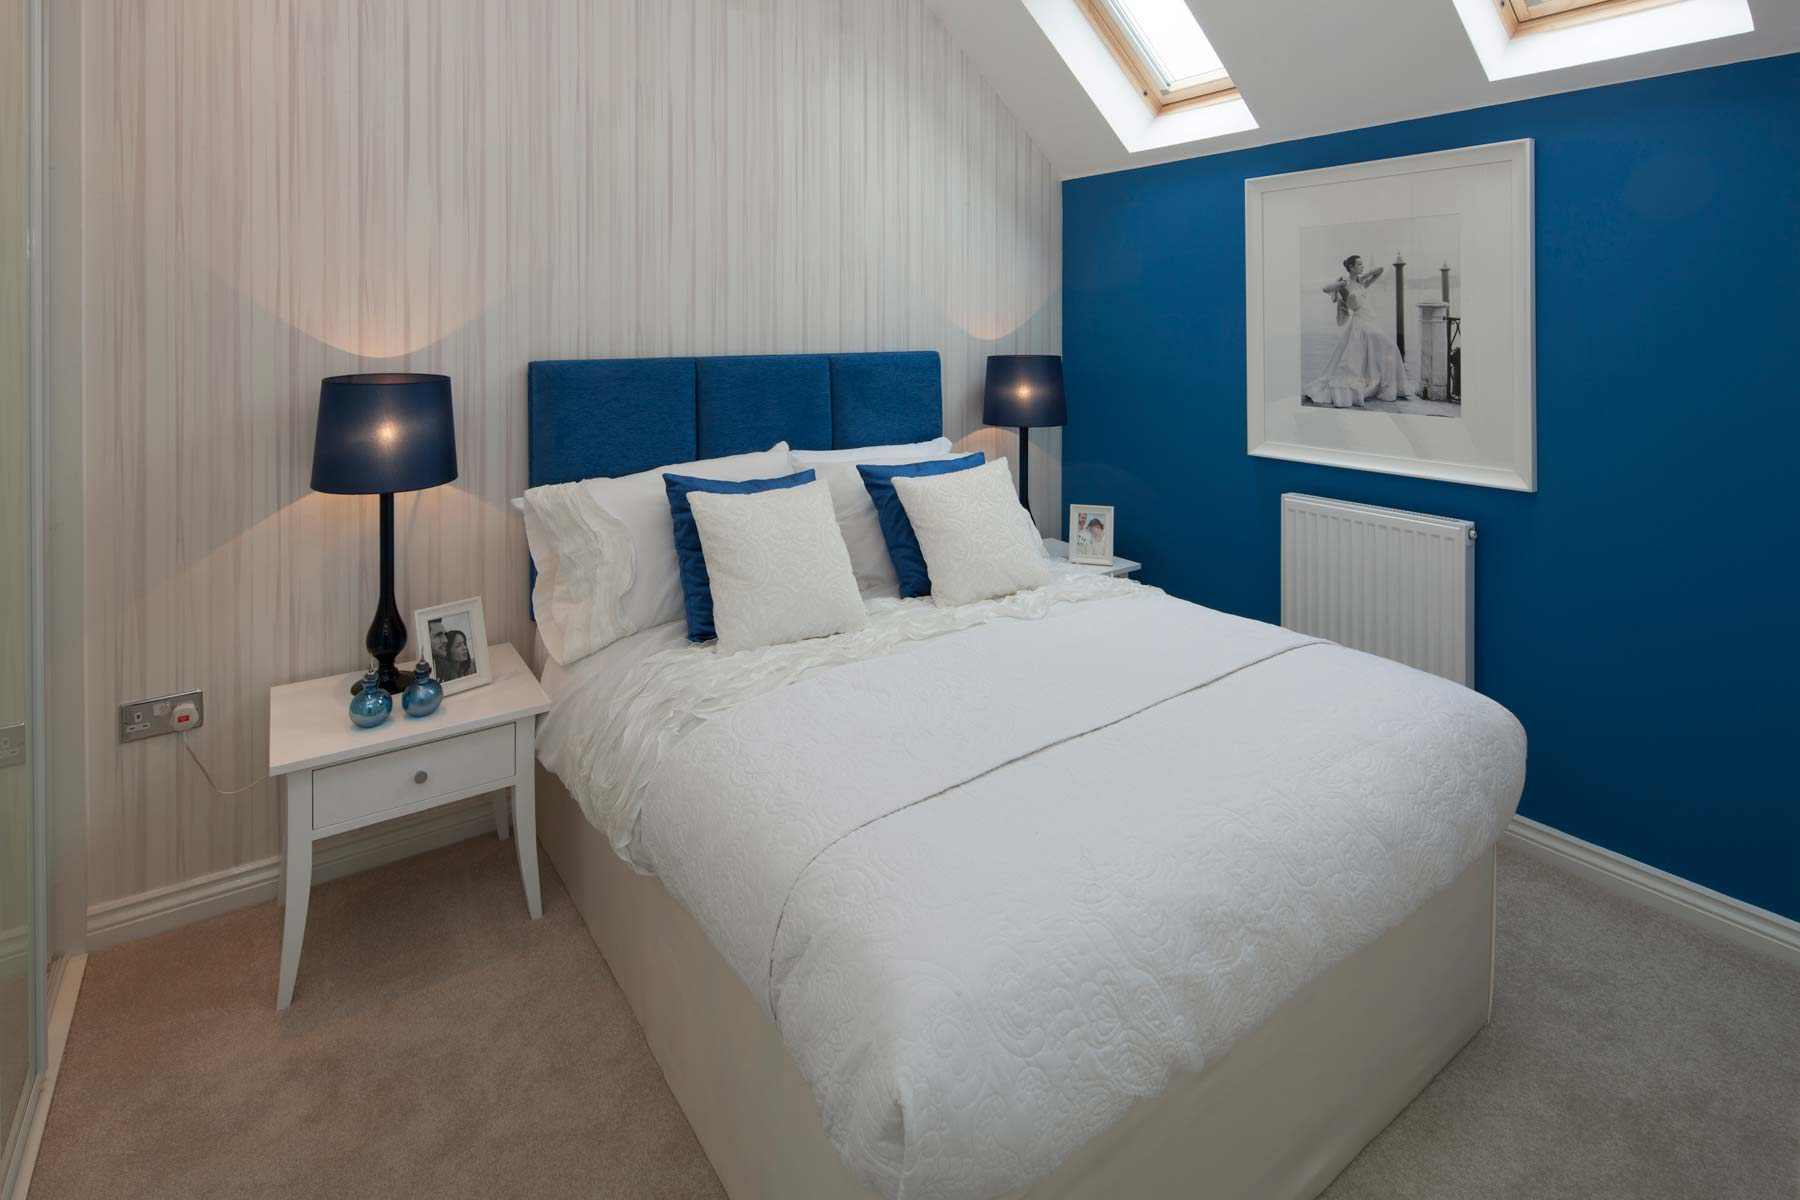 The Osterley Showhome Bedroom at Leybourne Chase